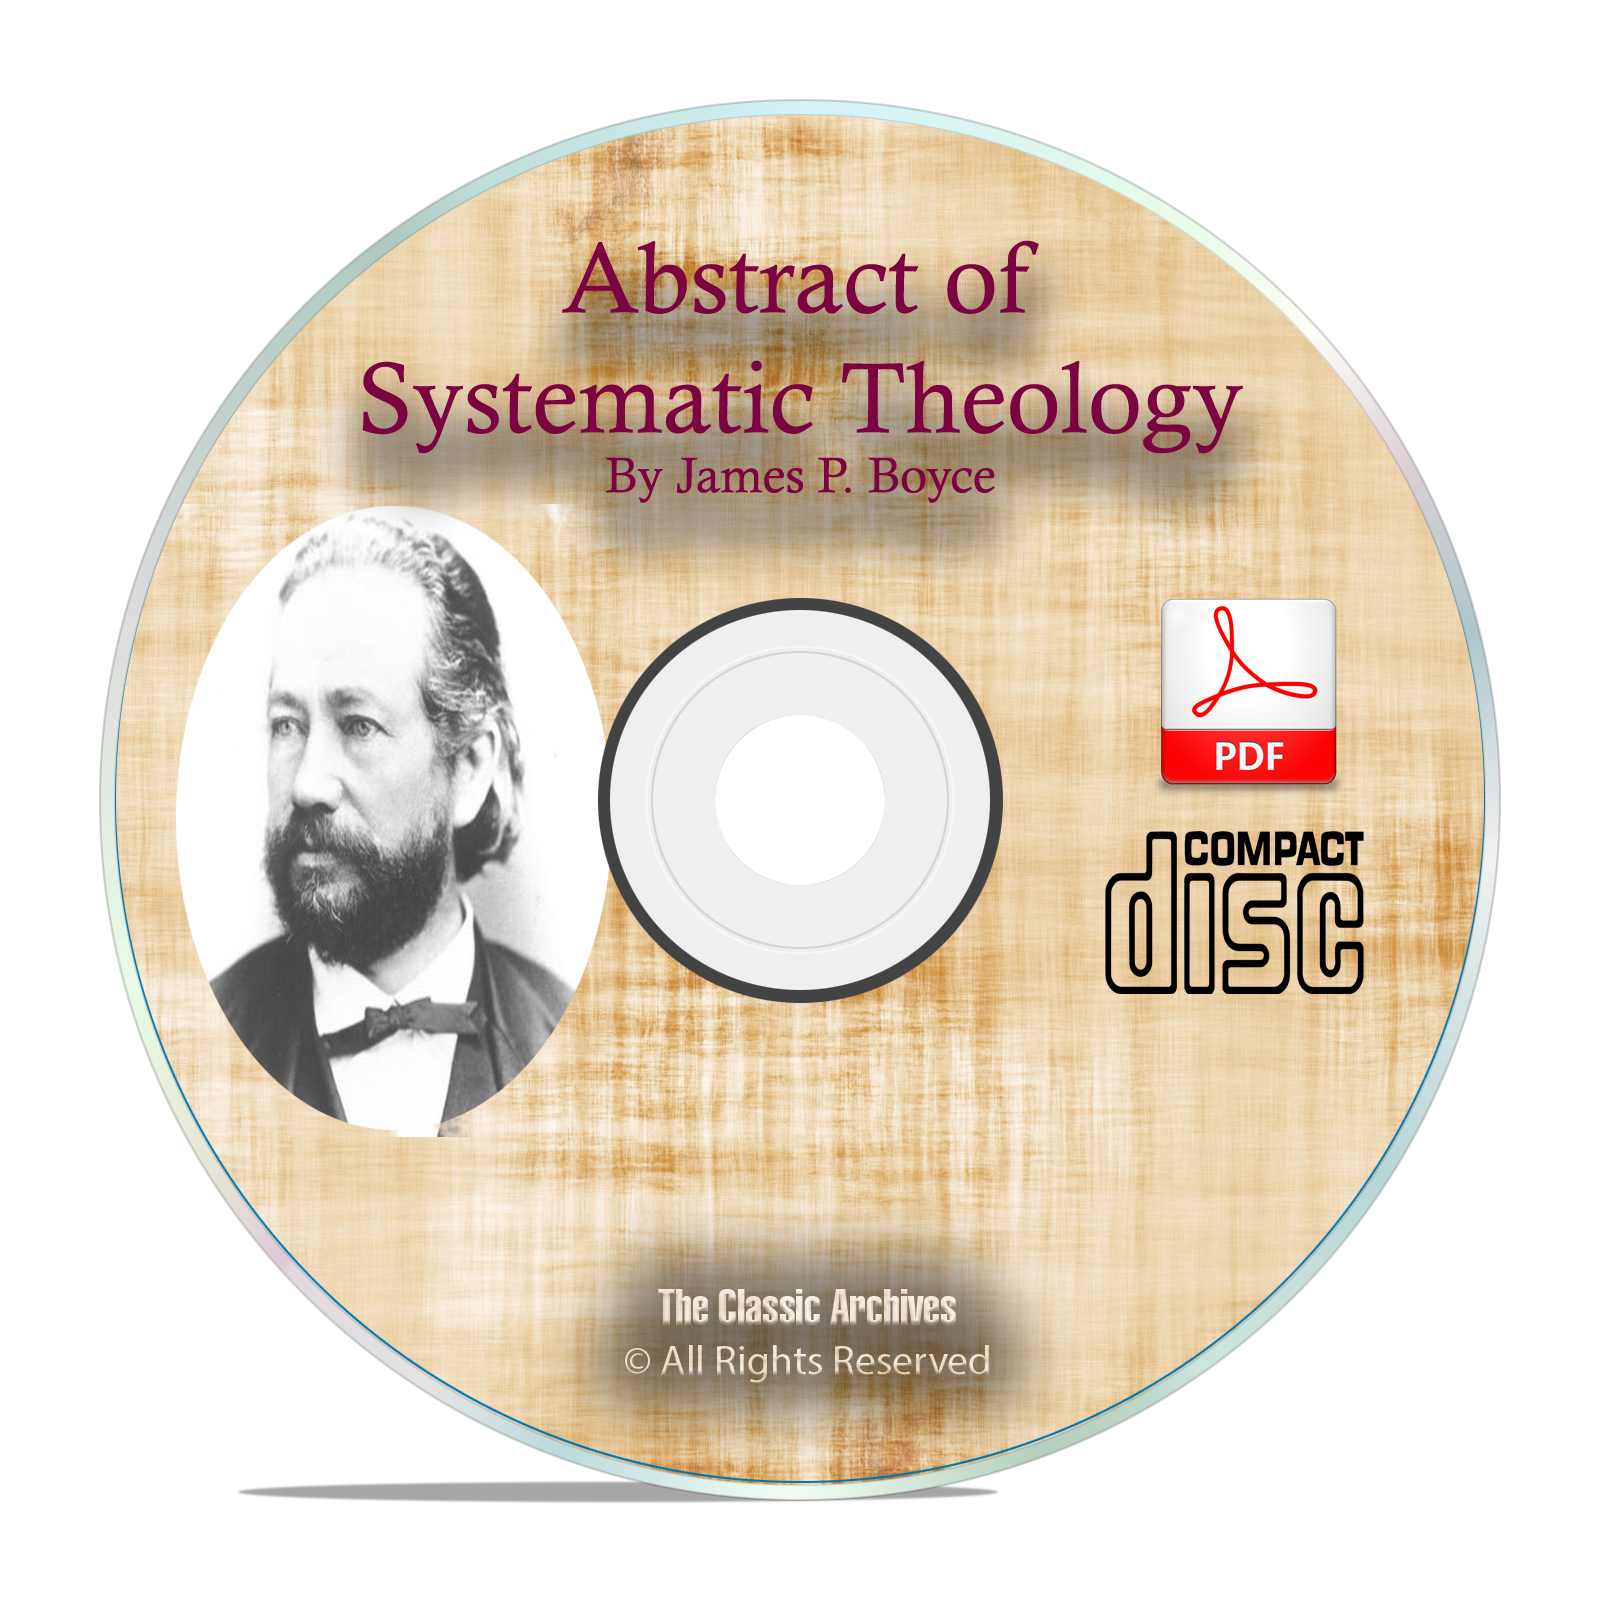 Abstract Systematic Theology, James Boyce, Bible Commentary Study PDF CD